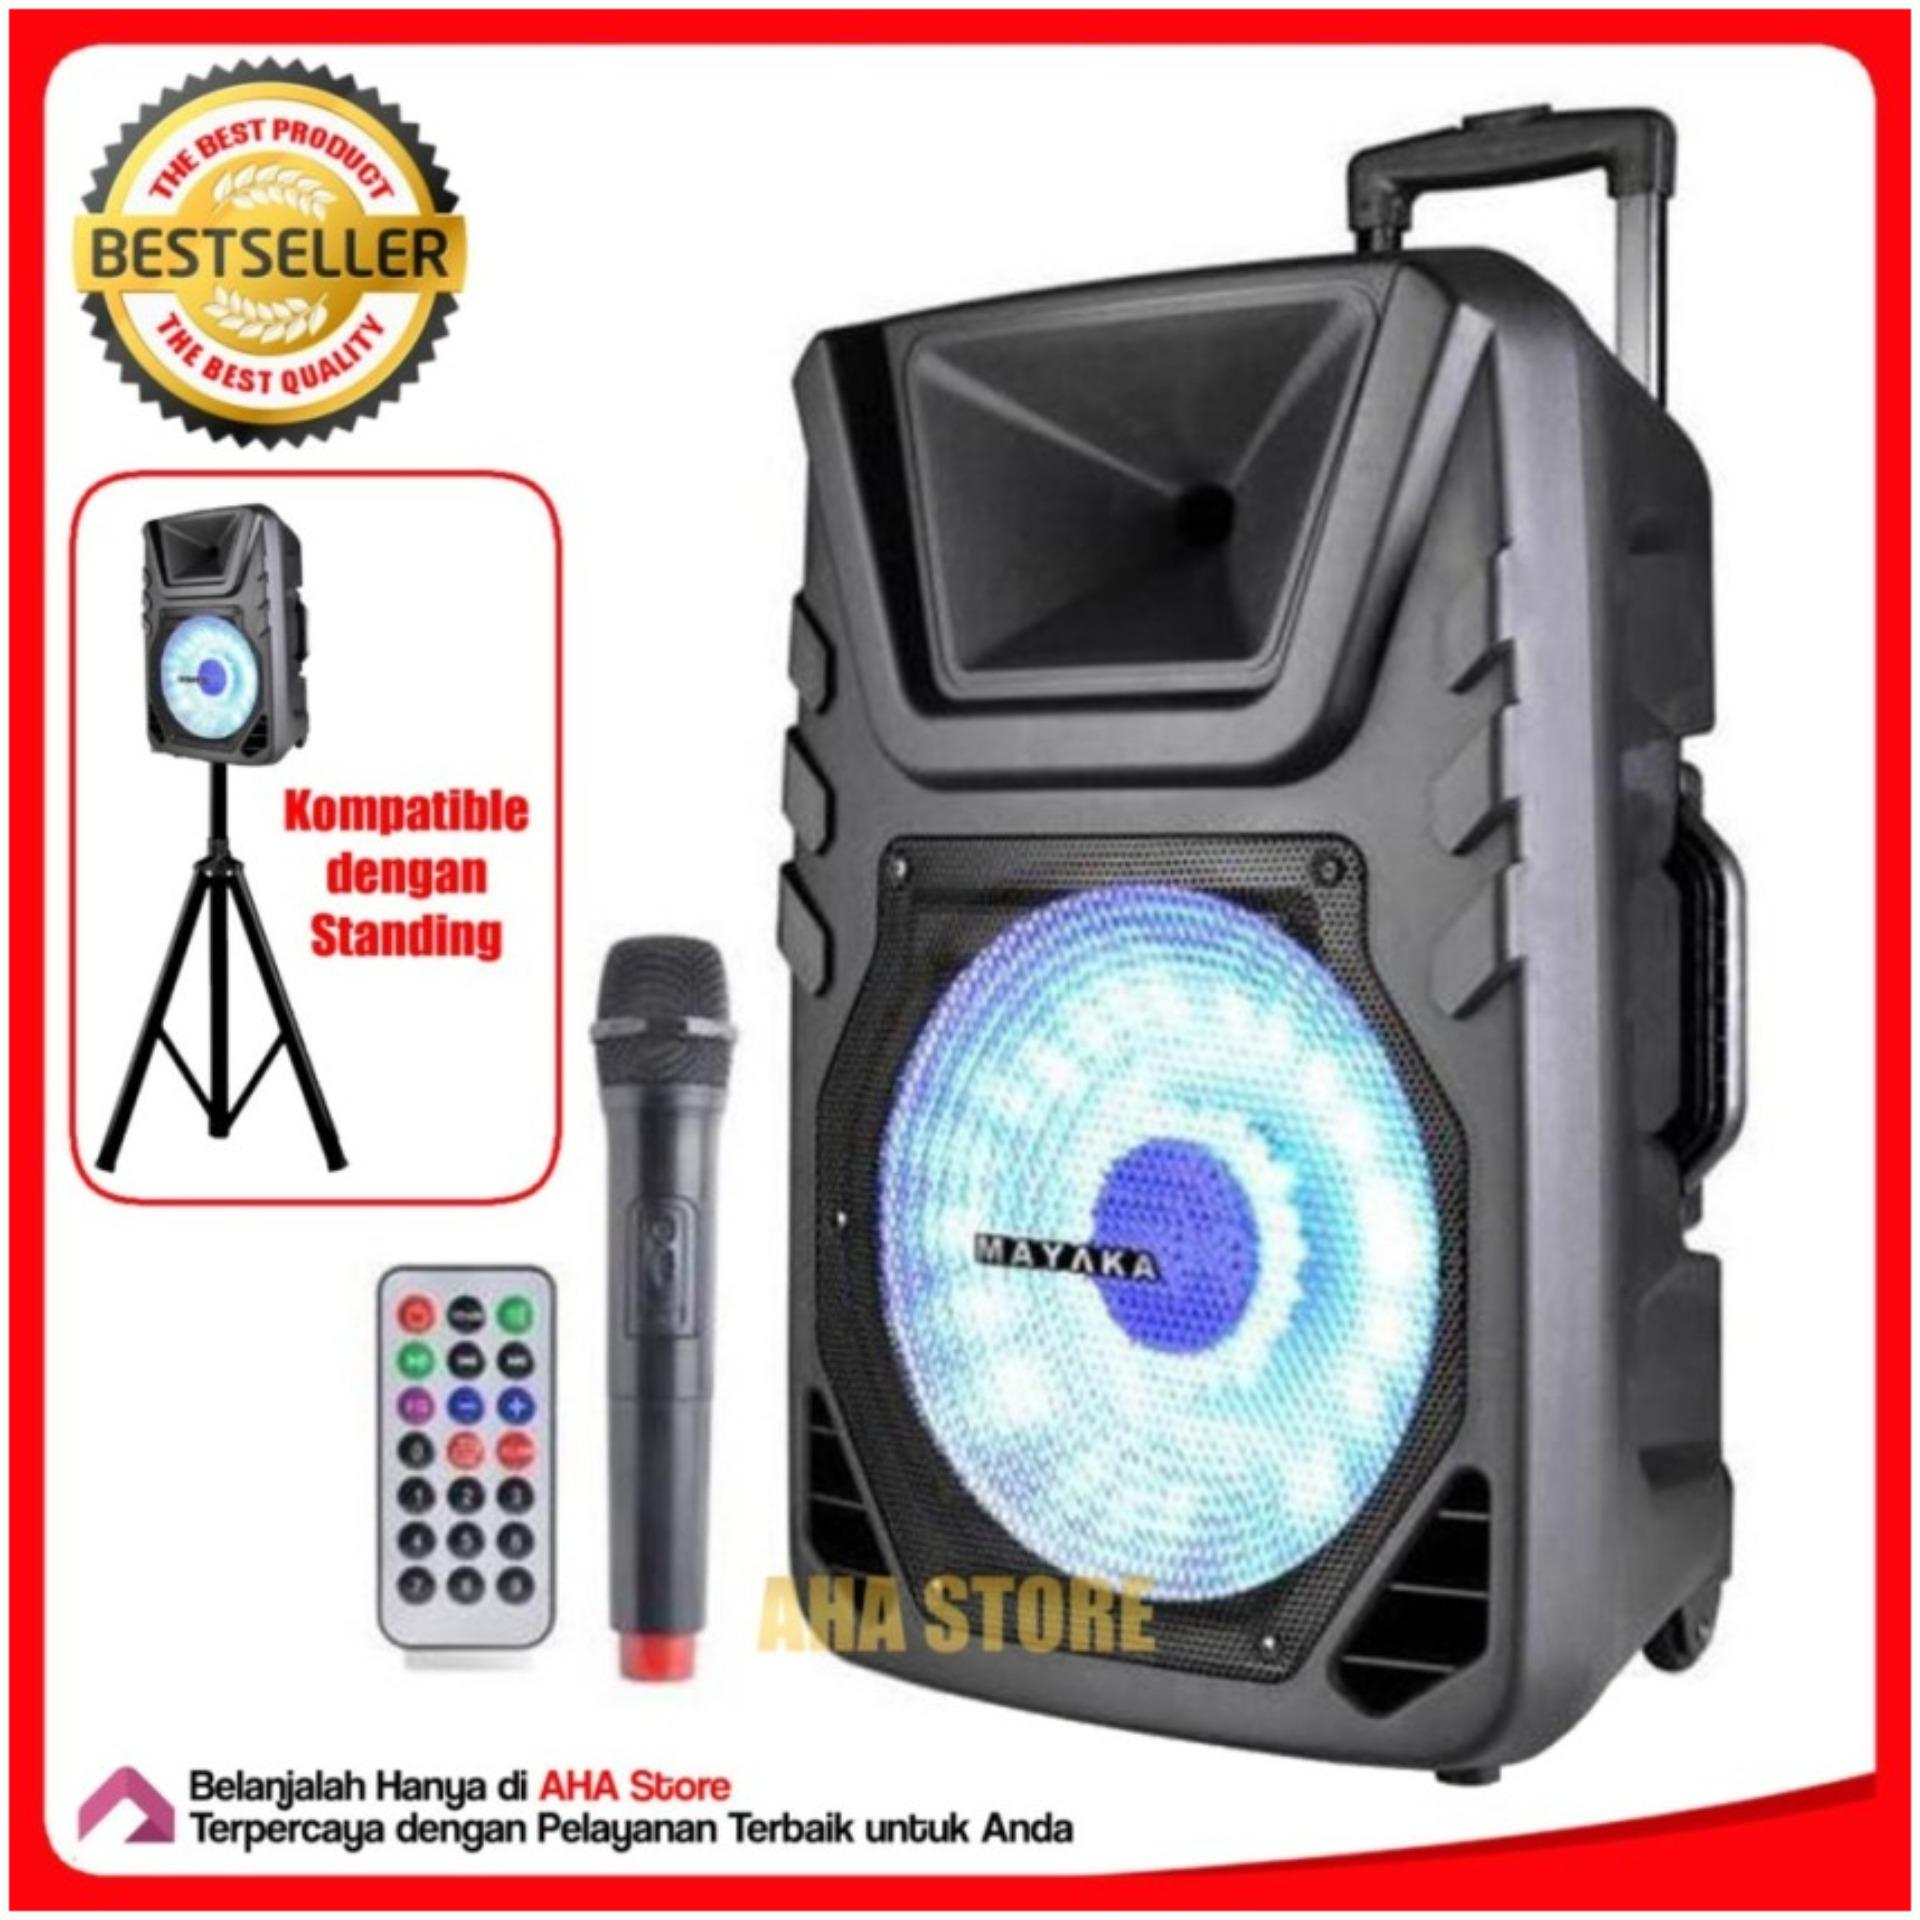 Mayaka Speaker Meeting SPKT-010 AD - Hitam suara mantap